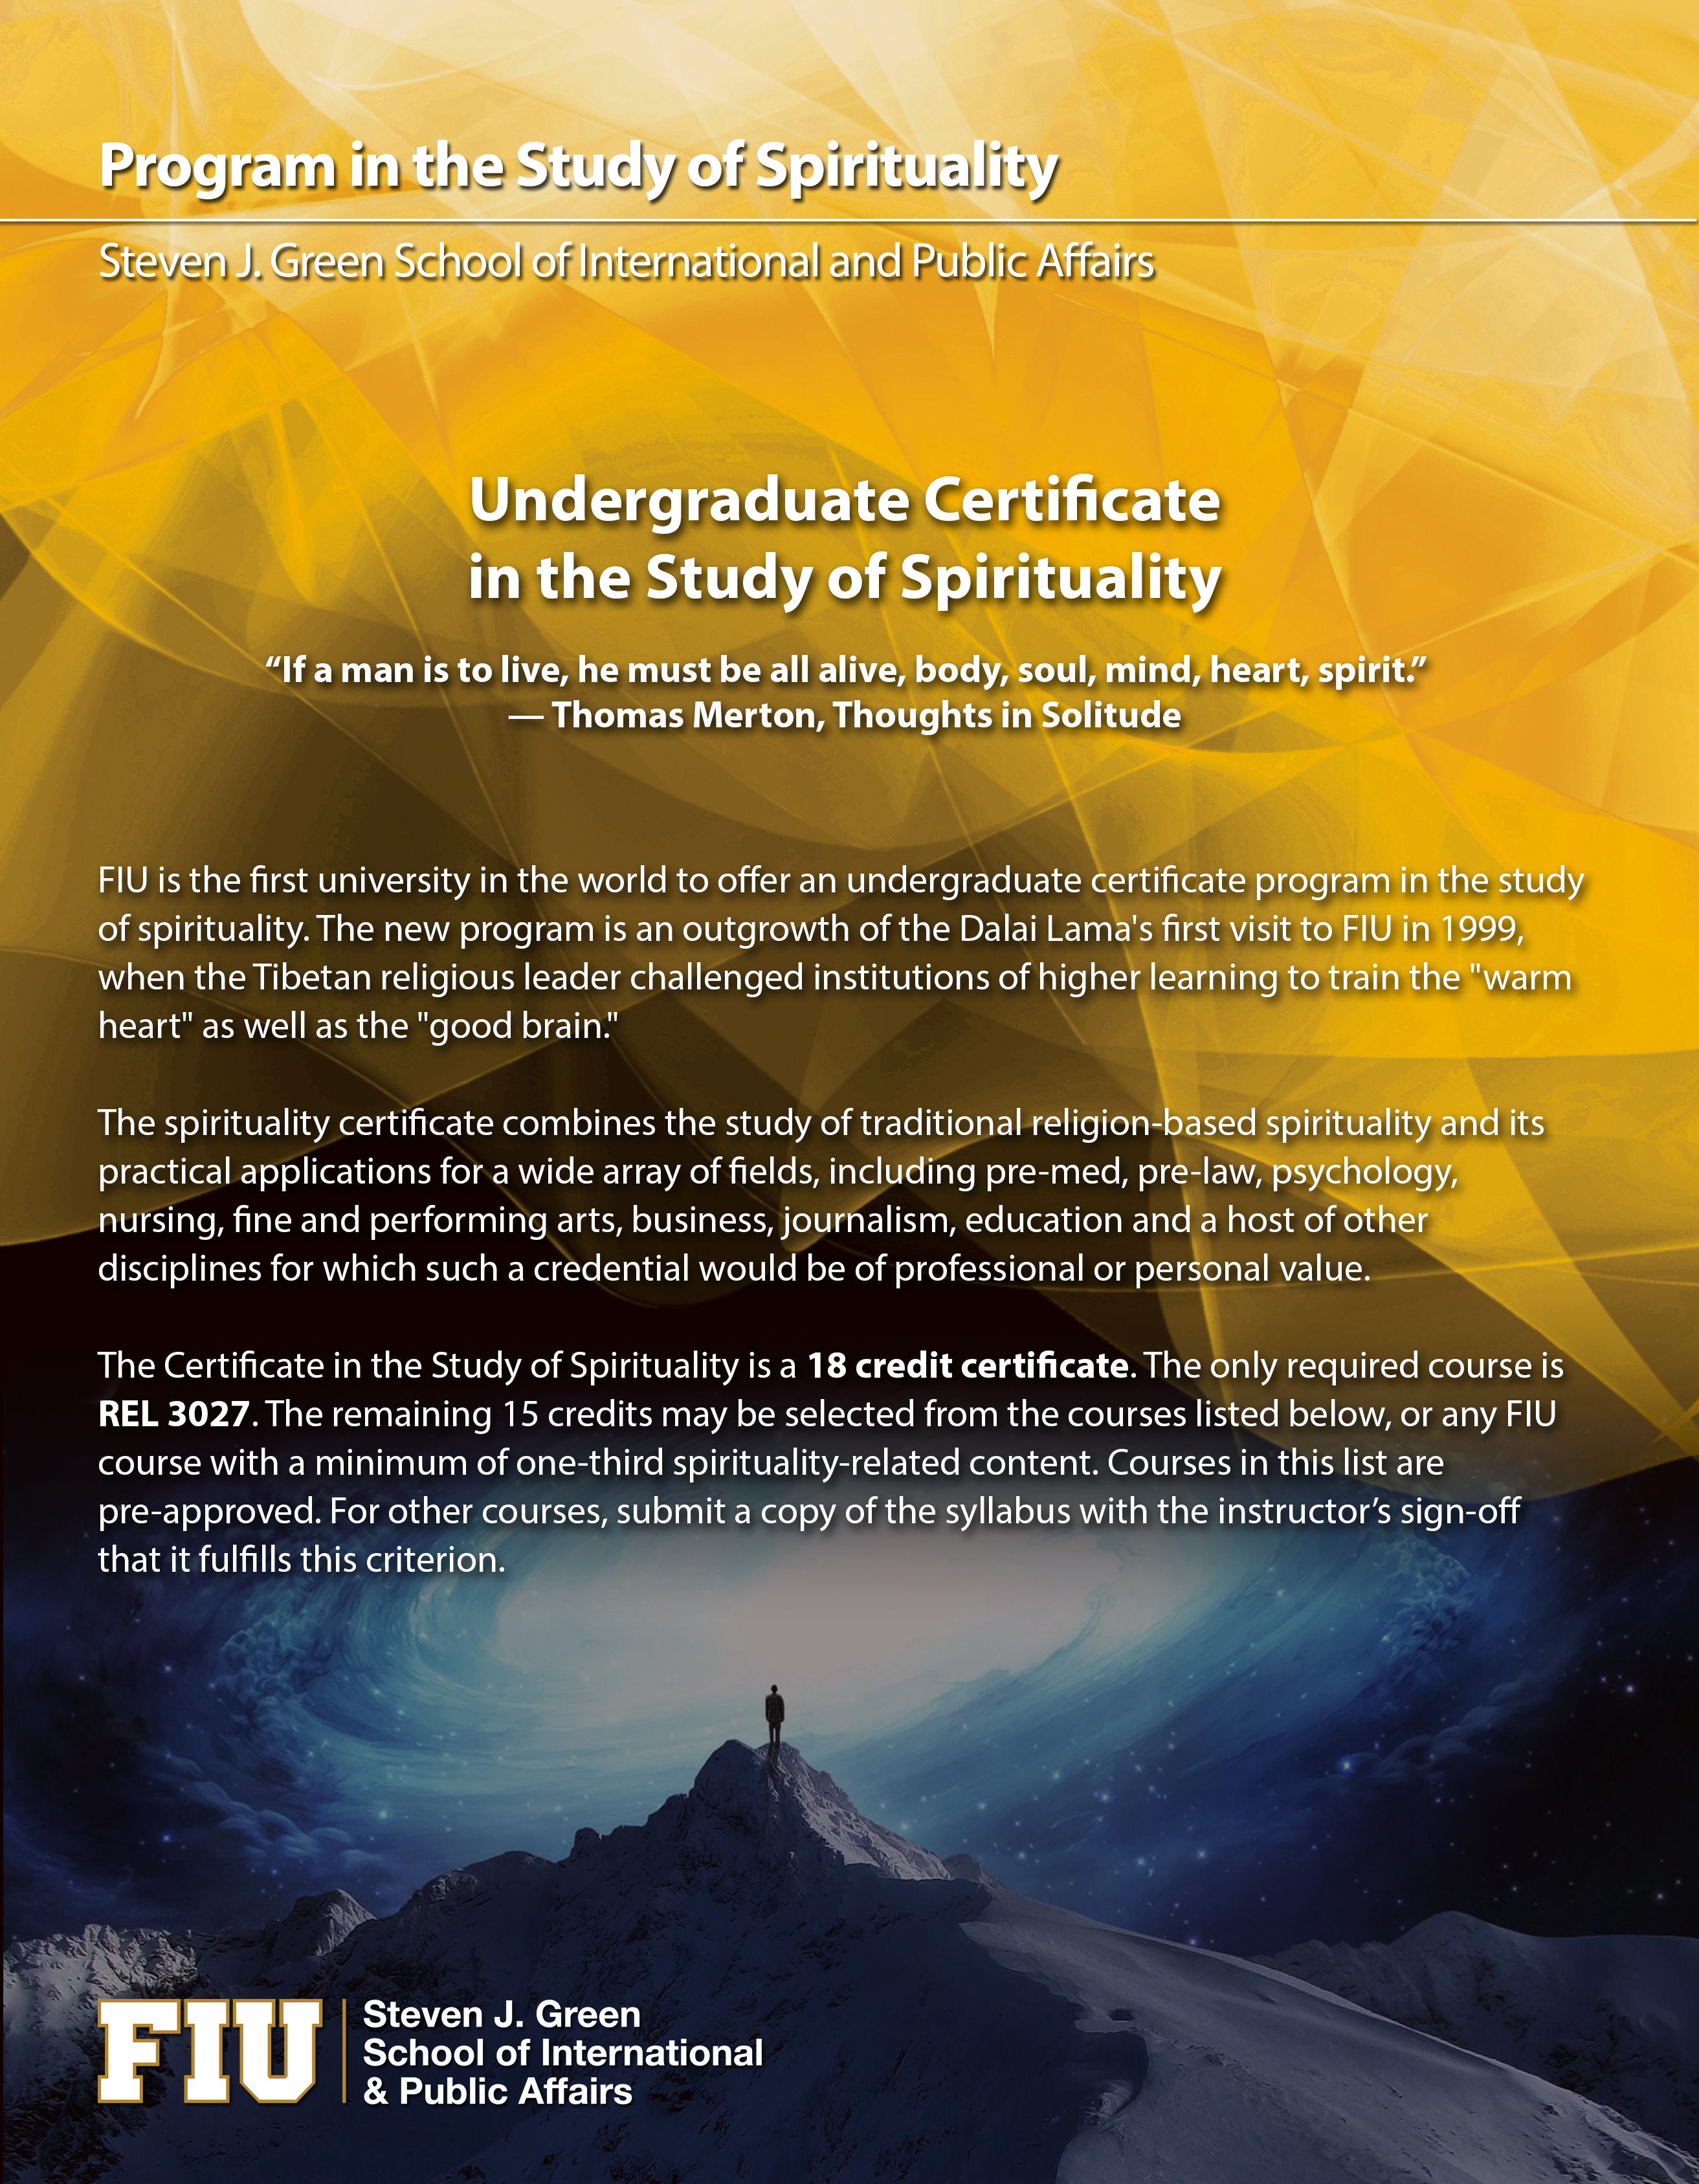 fiu application essay healthcare mba fiu business graduate essays  welcome program in the study of spirituality resource guide center for spirituality health university of florida